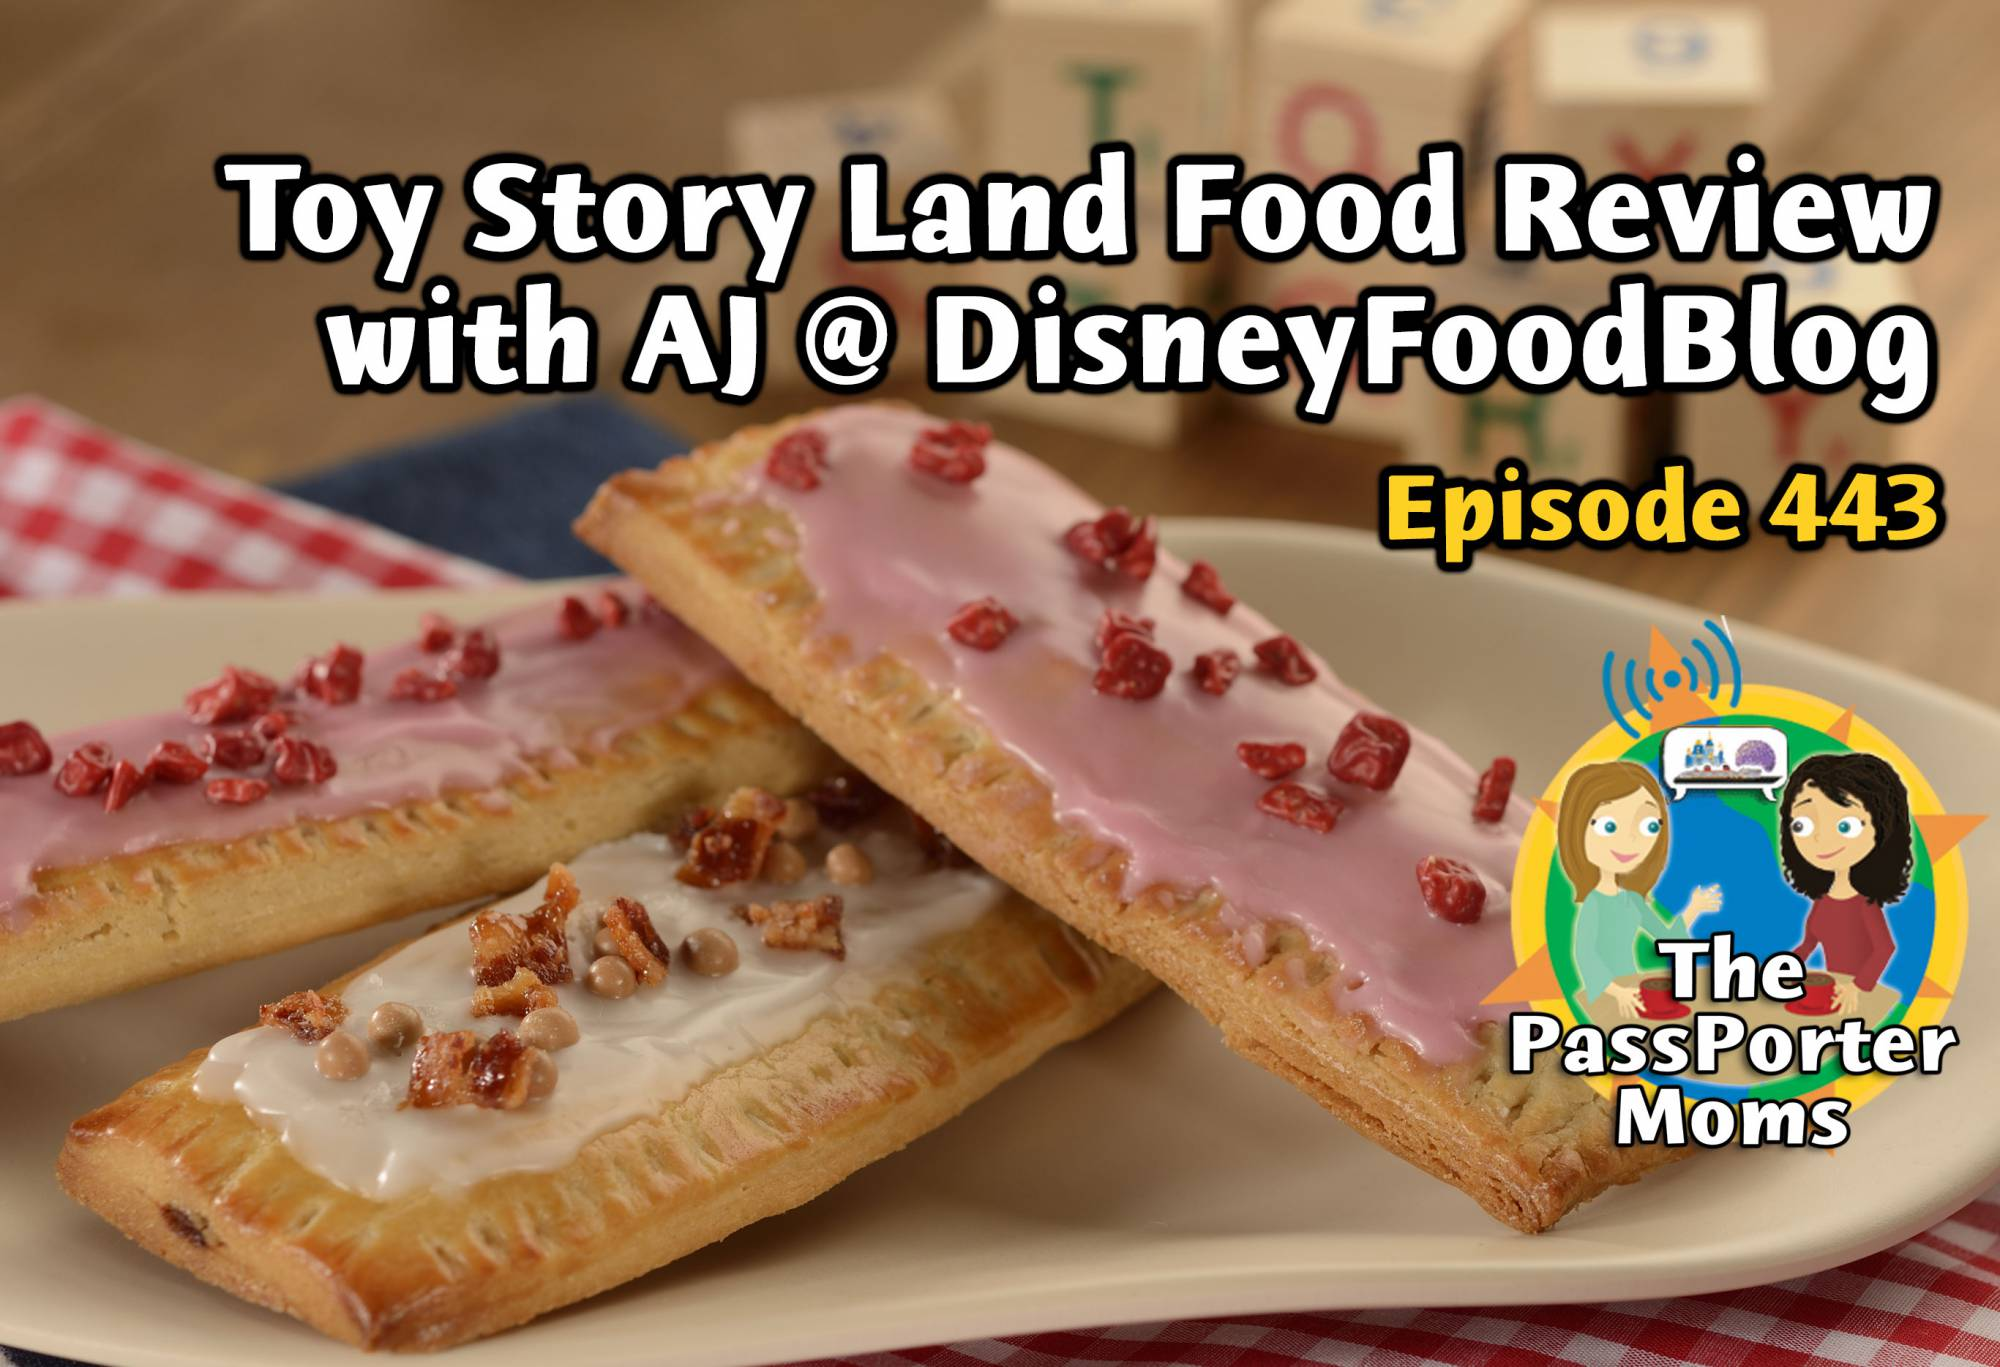 Toy Story Land Food Review